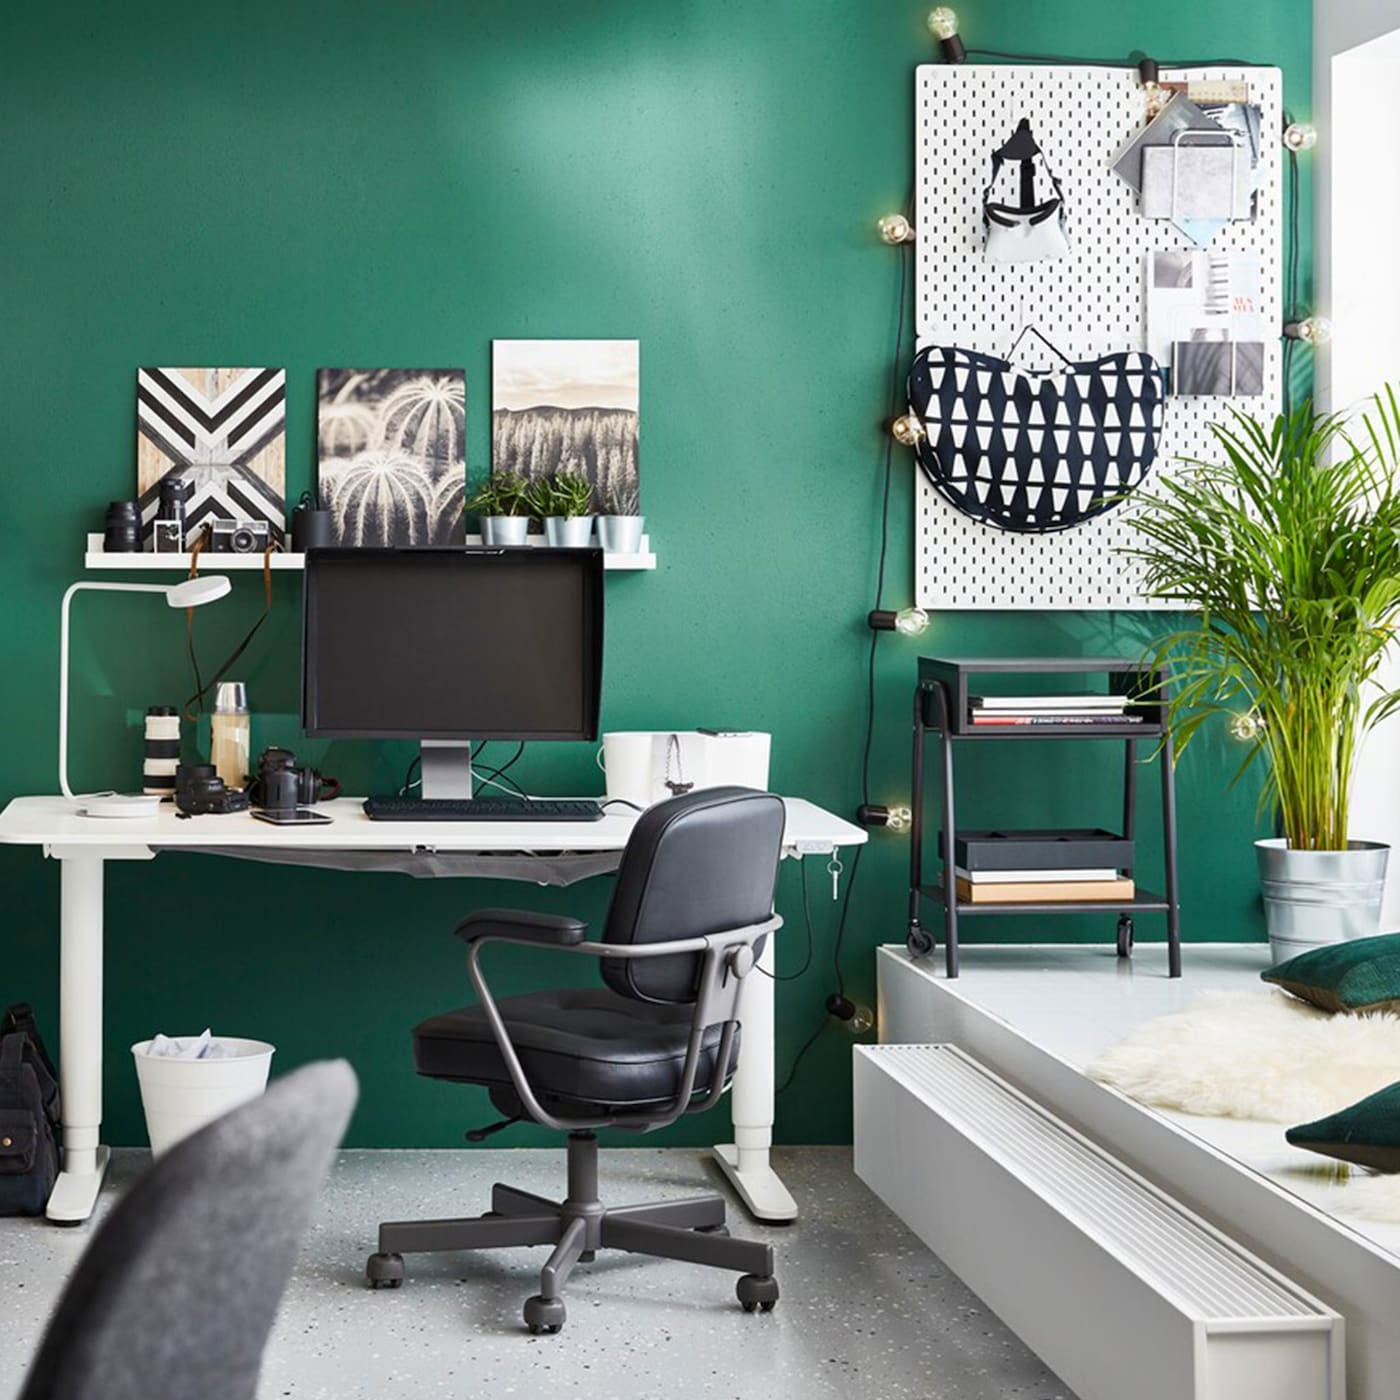 BEKANT white sit-stand desks in a green-walled office space with aALEFJÄLL black swivel chairs and NILSERIK stool.